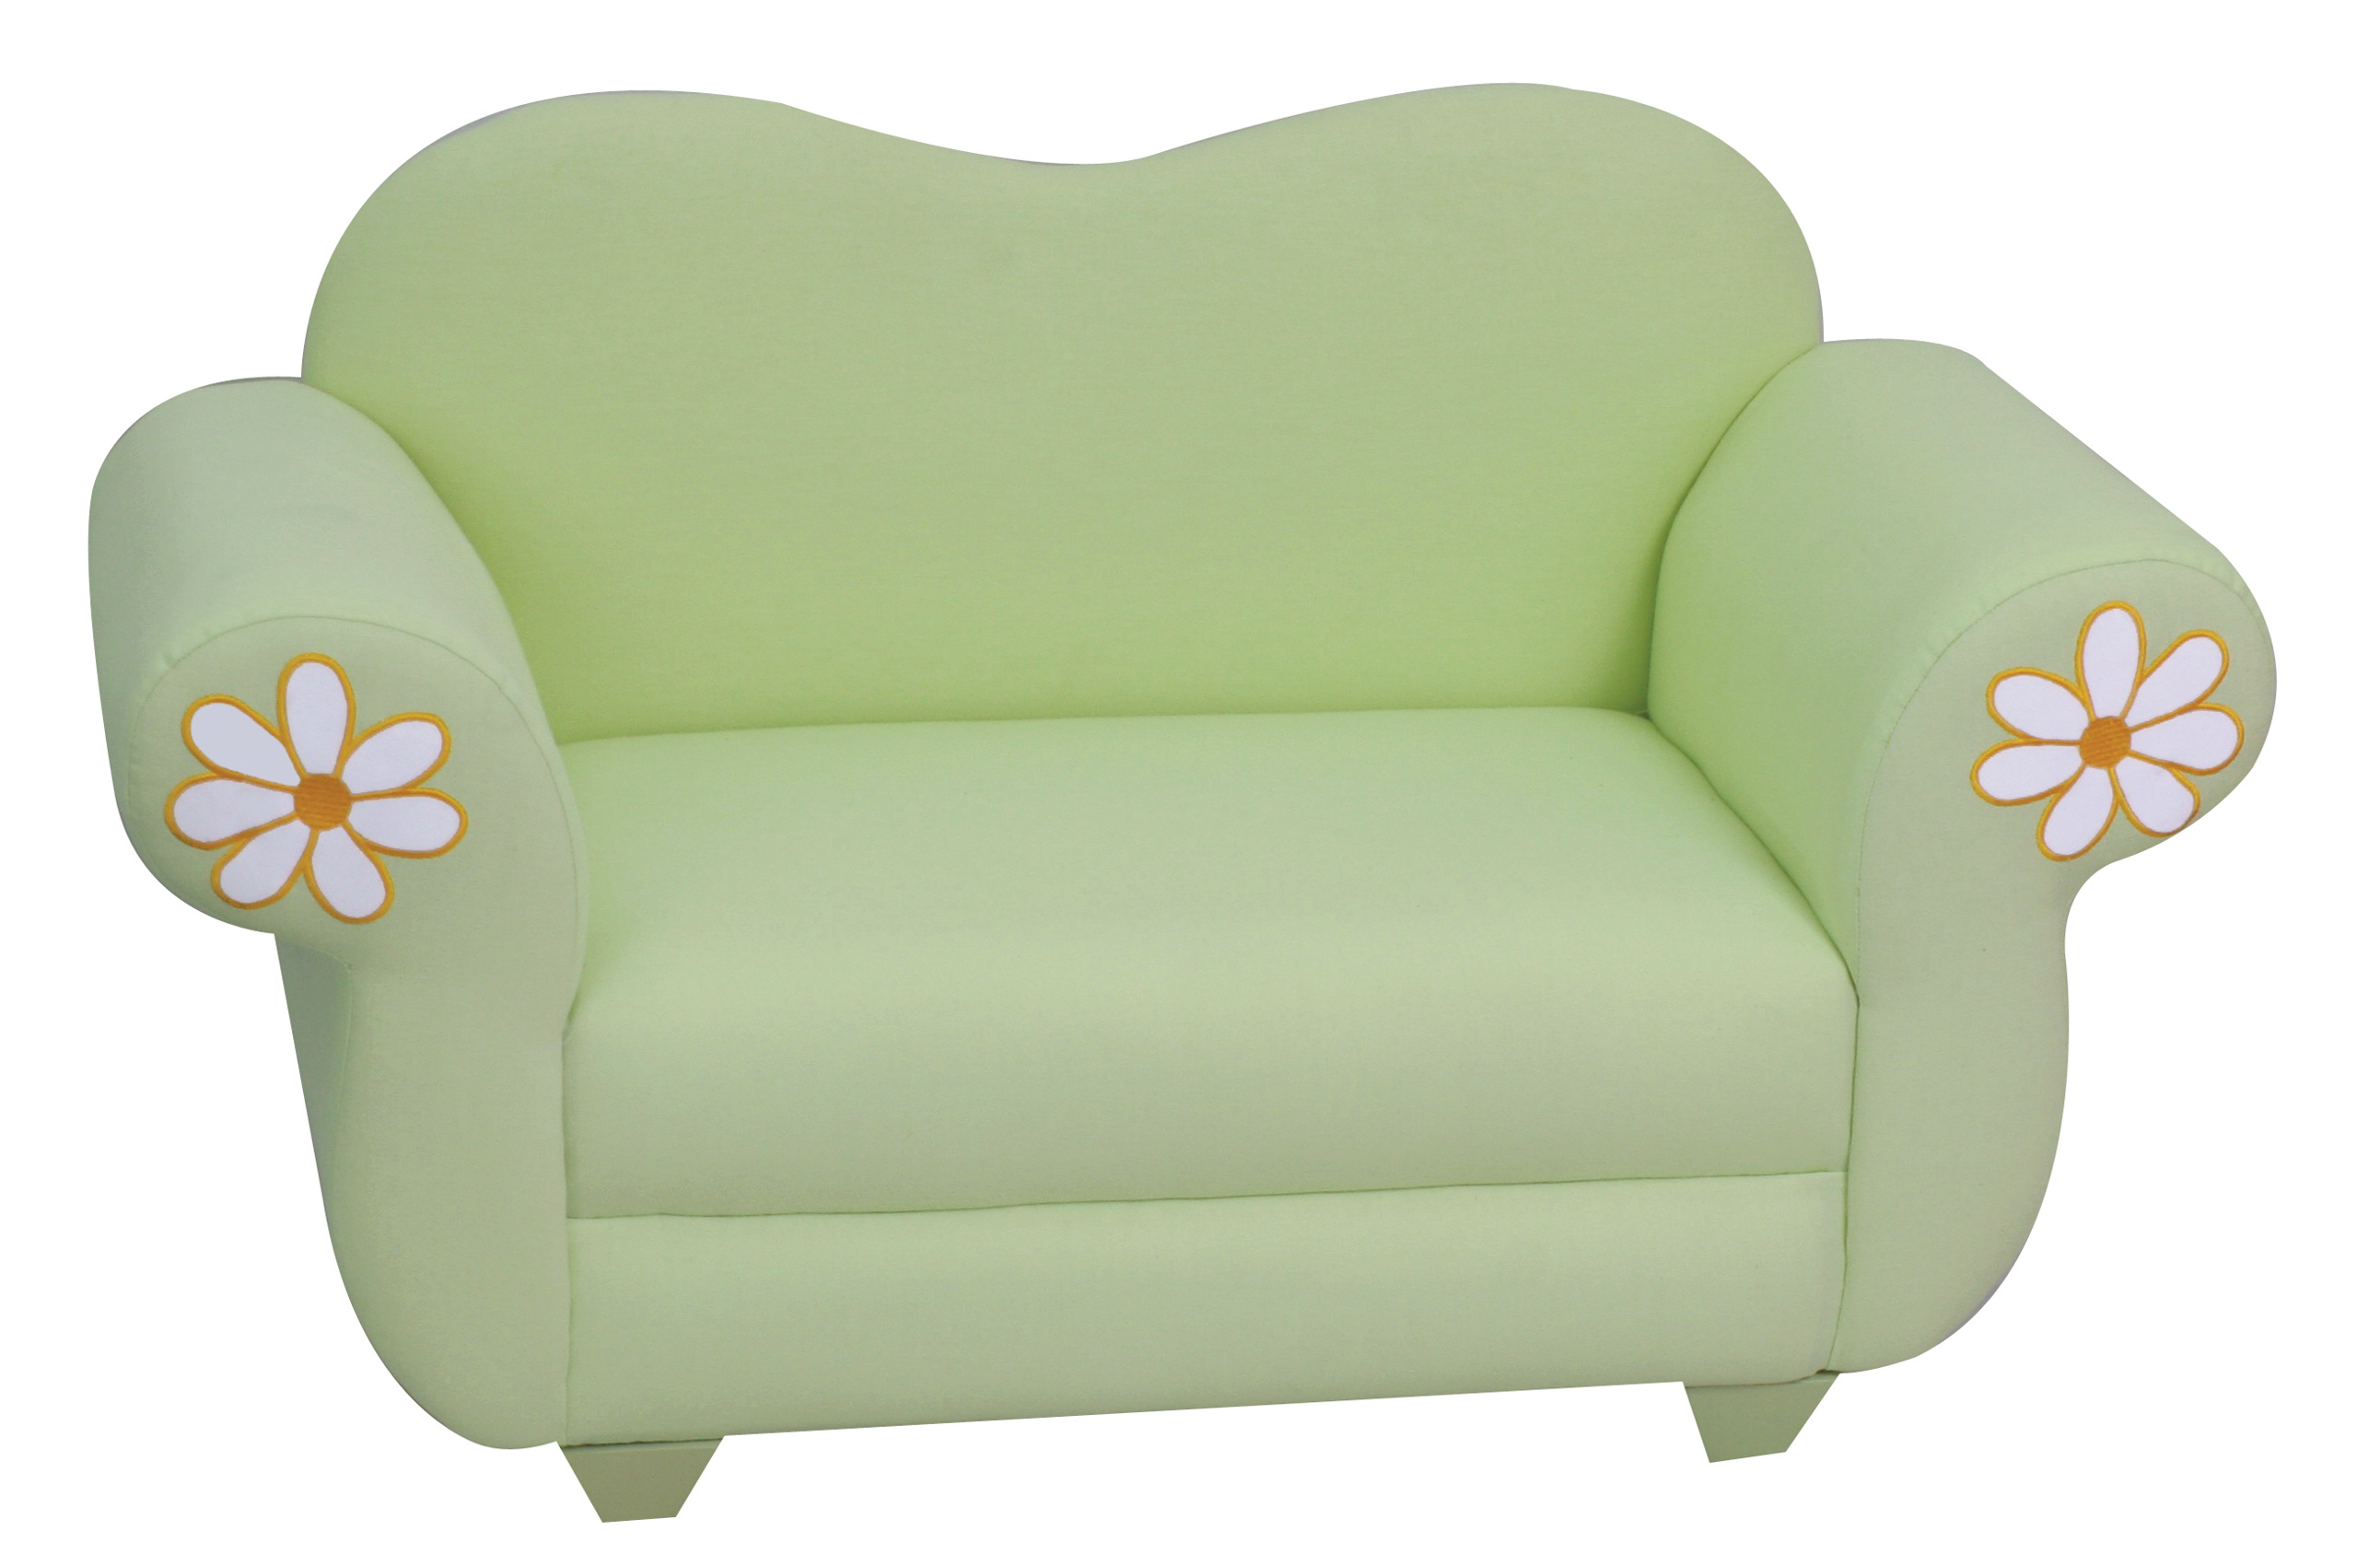 Interior Designs clipart modern furniture Downloadclipart and photo Sofa Sofa